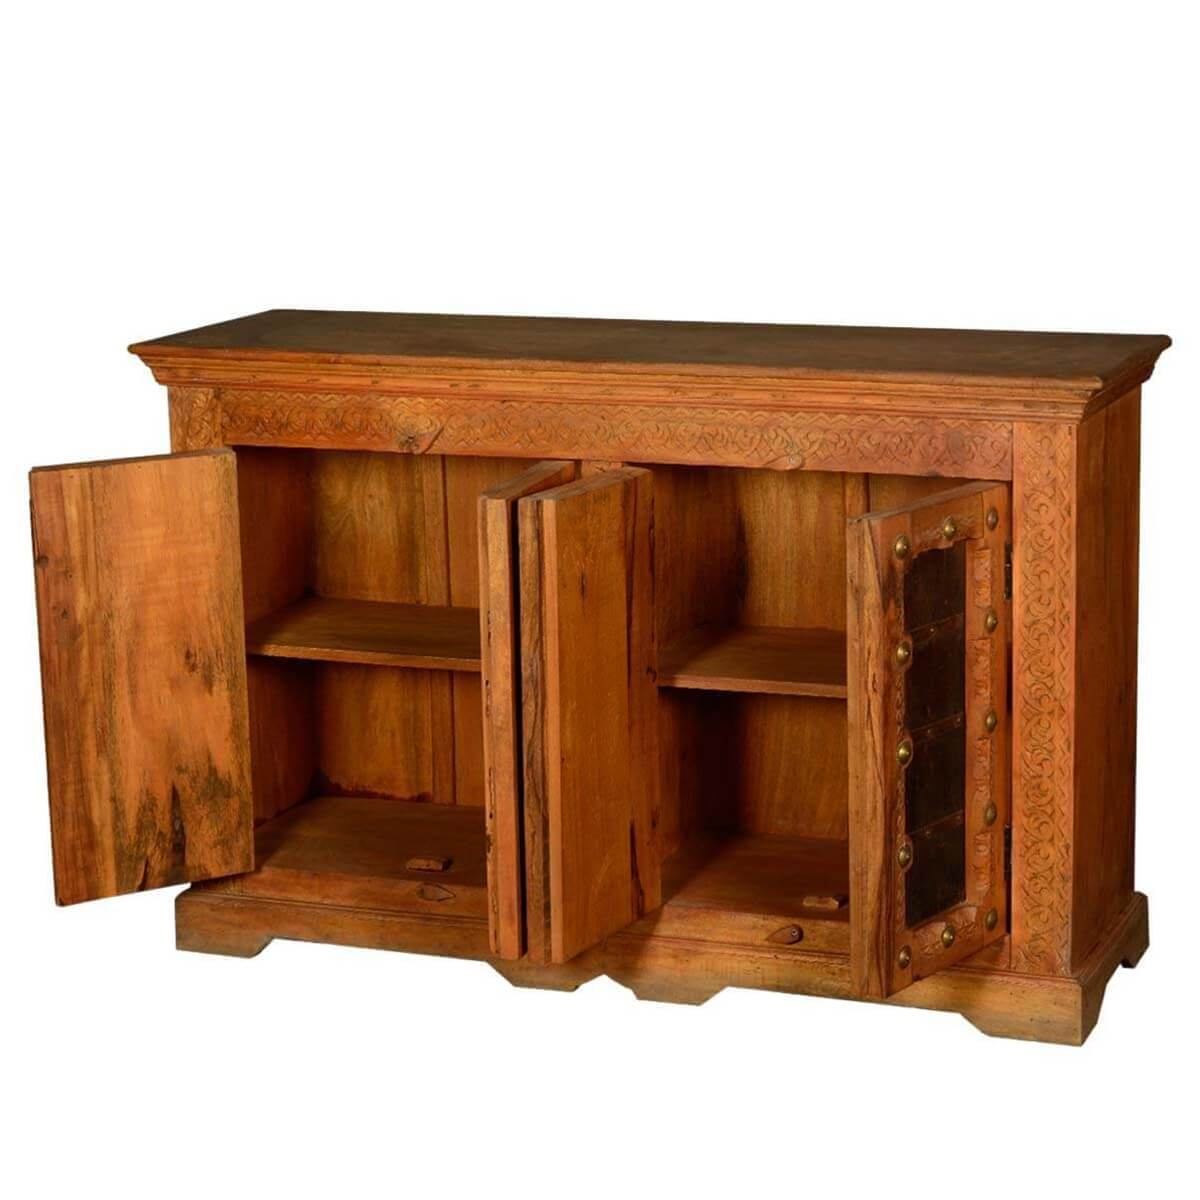 Springfield rustic reclaimed wood handcrafted door buffet